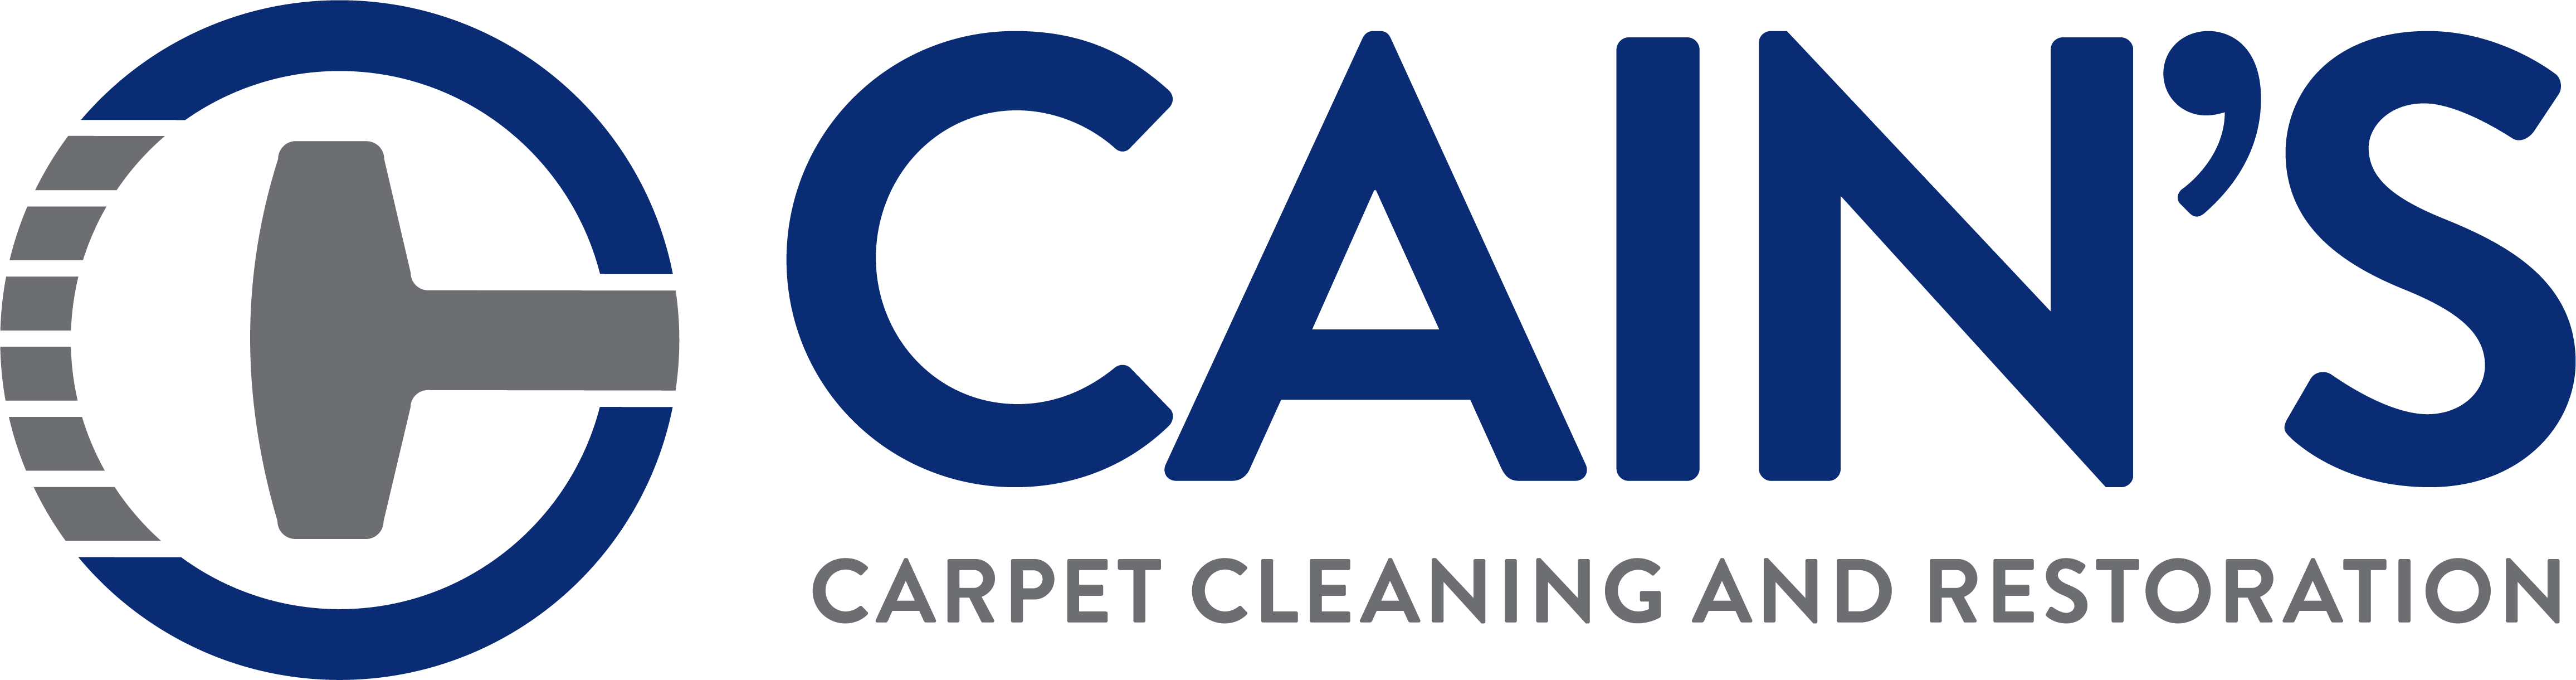 806  353 1695  Services  Restoration Carpet Cleaning. Cain s   Home